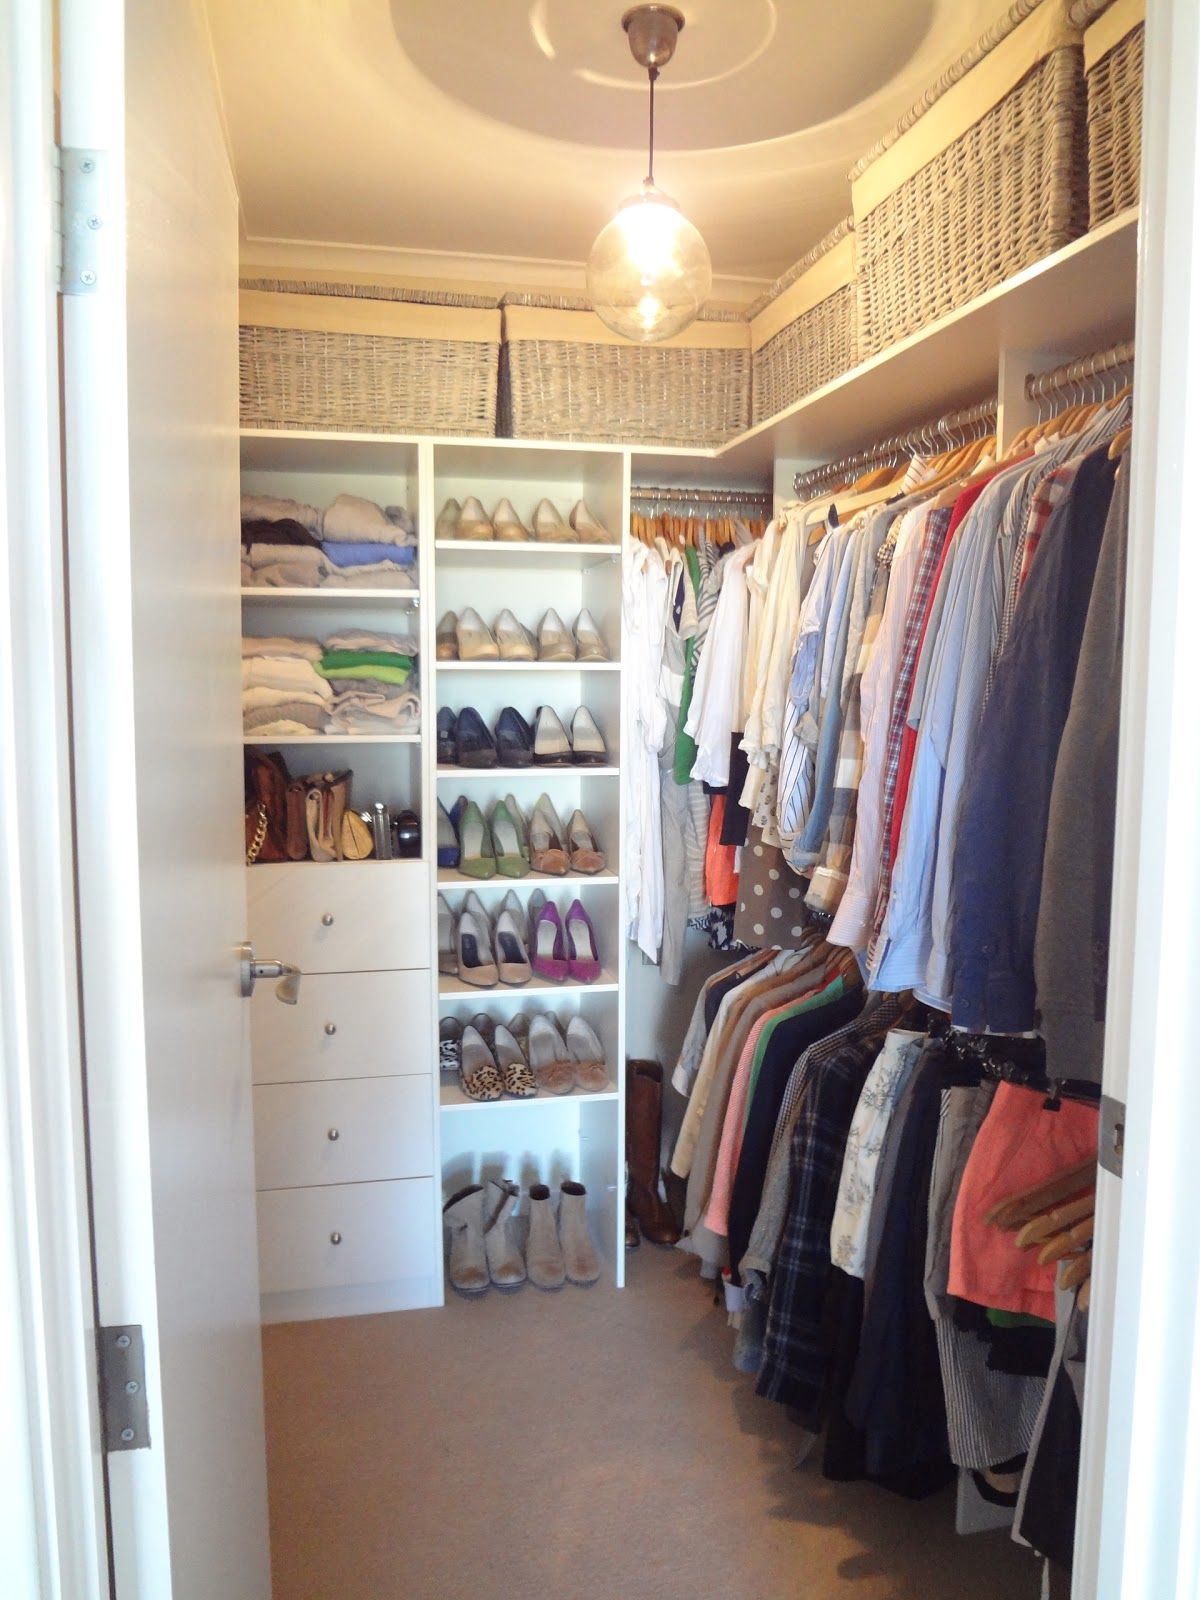 20 incredible small walk in closet ideas makeovers - Walk in closet ideas ...